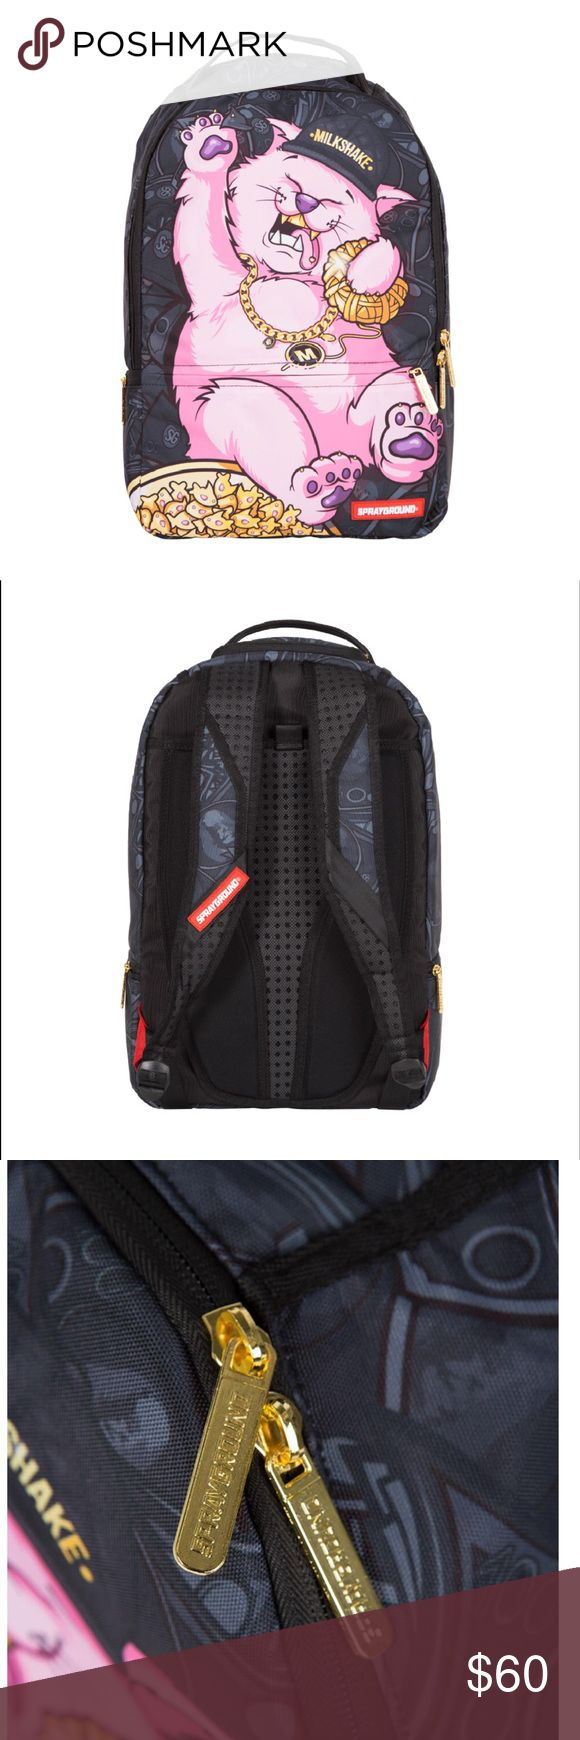 """Spray Ground """"KITTEN LIFE"""" BackPack, NWT. Spray Ground """"KITTEN LIFE"""" BackPack, NWT. Out before release, originally priced at $120.00. Spray Ground Bags Backpacks"""